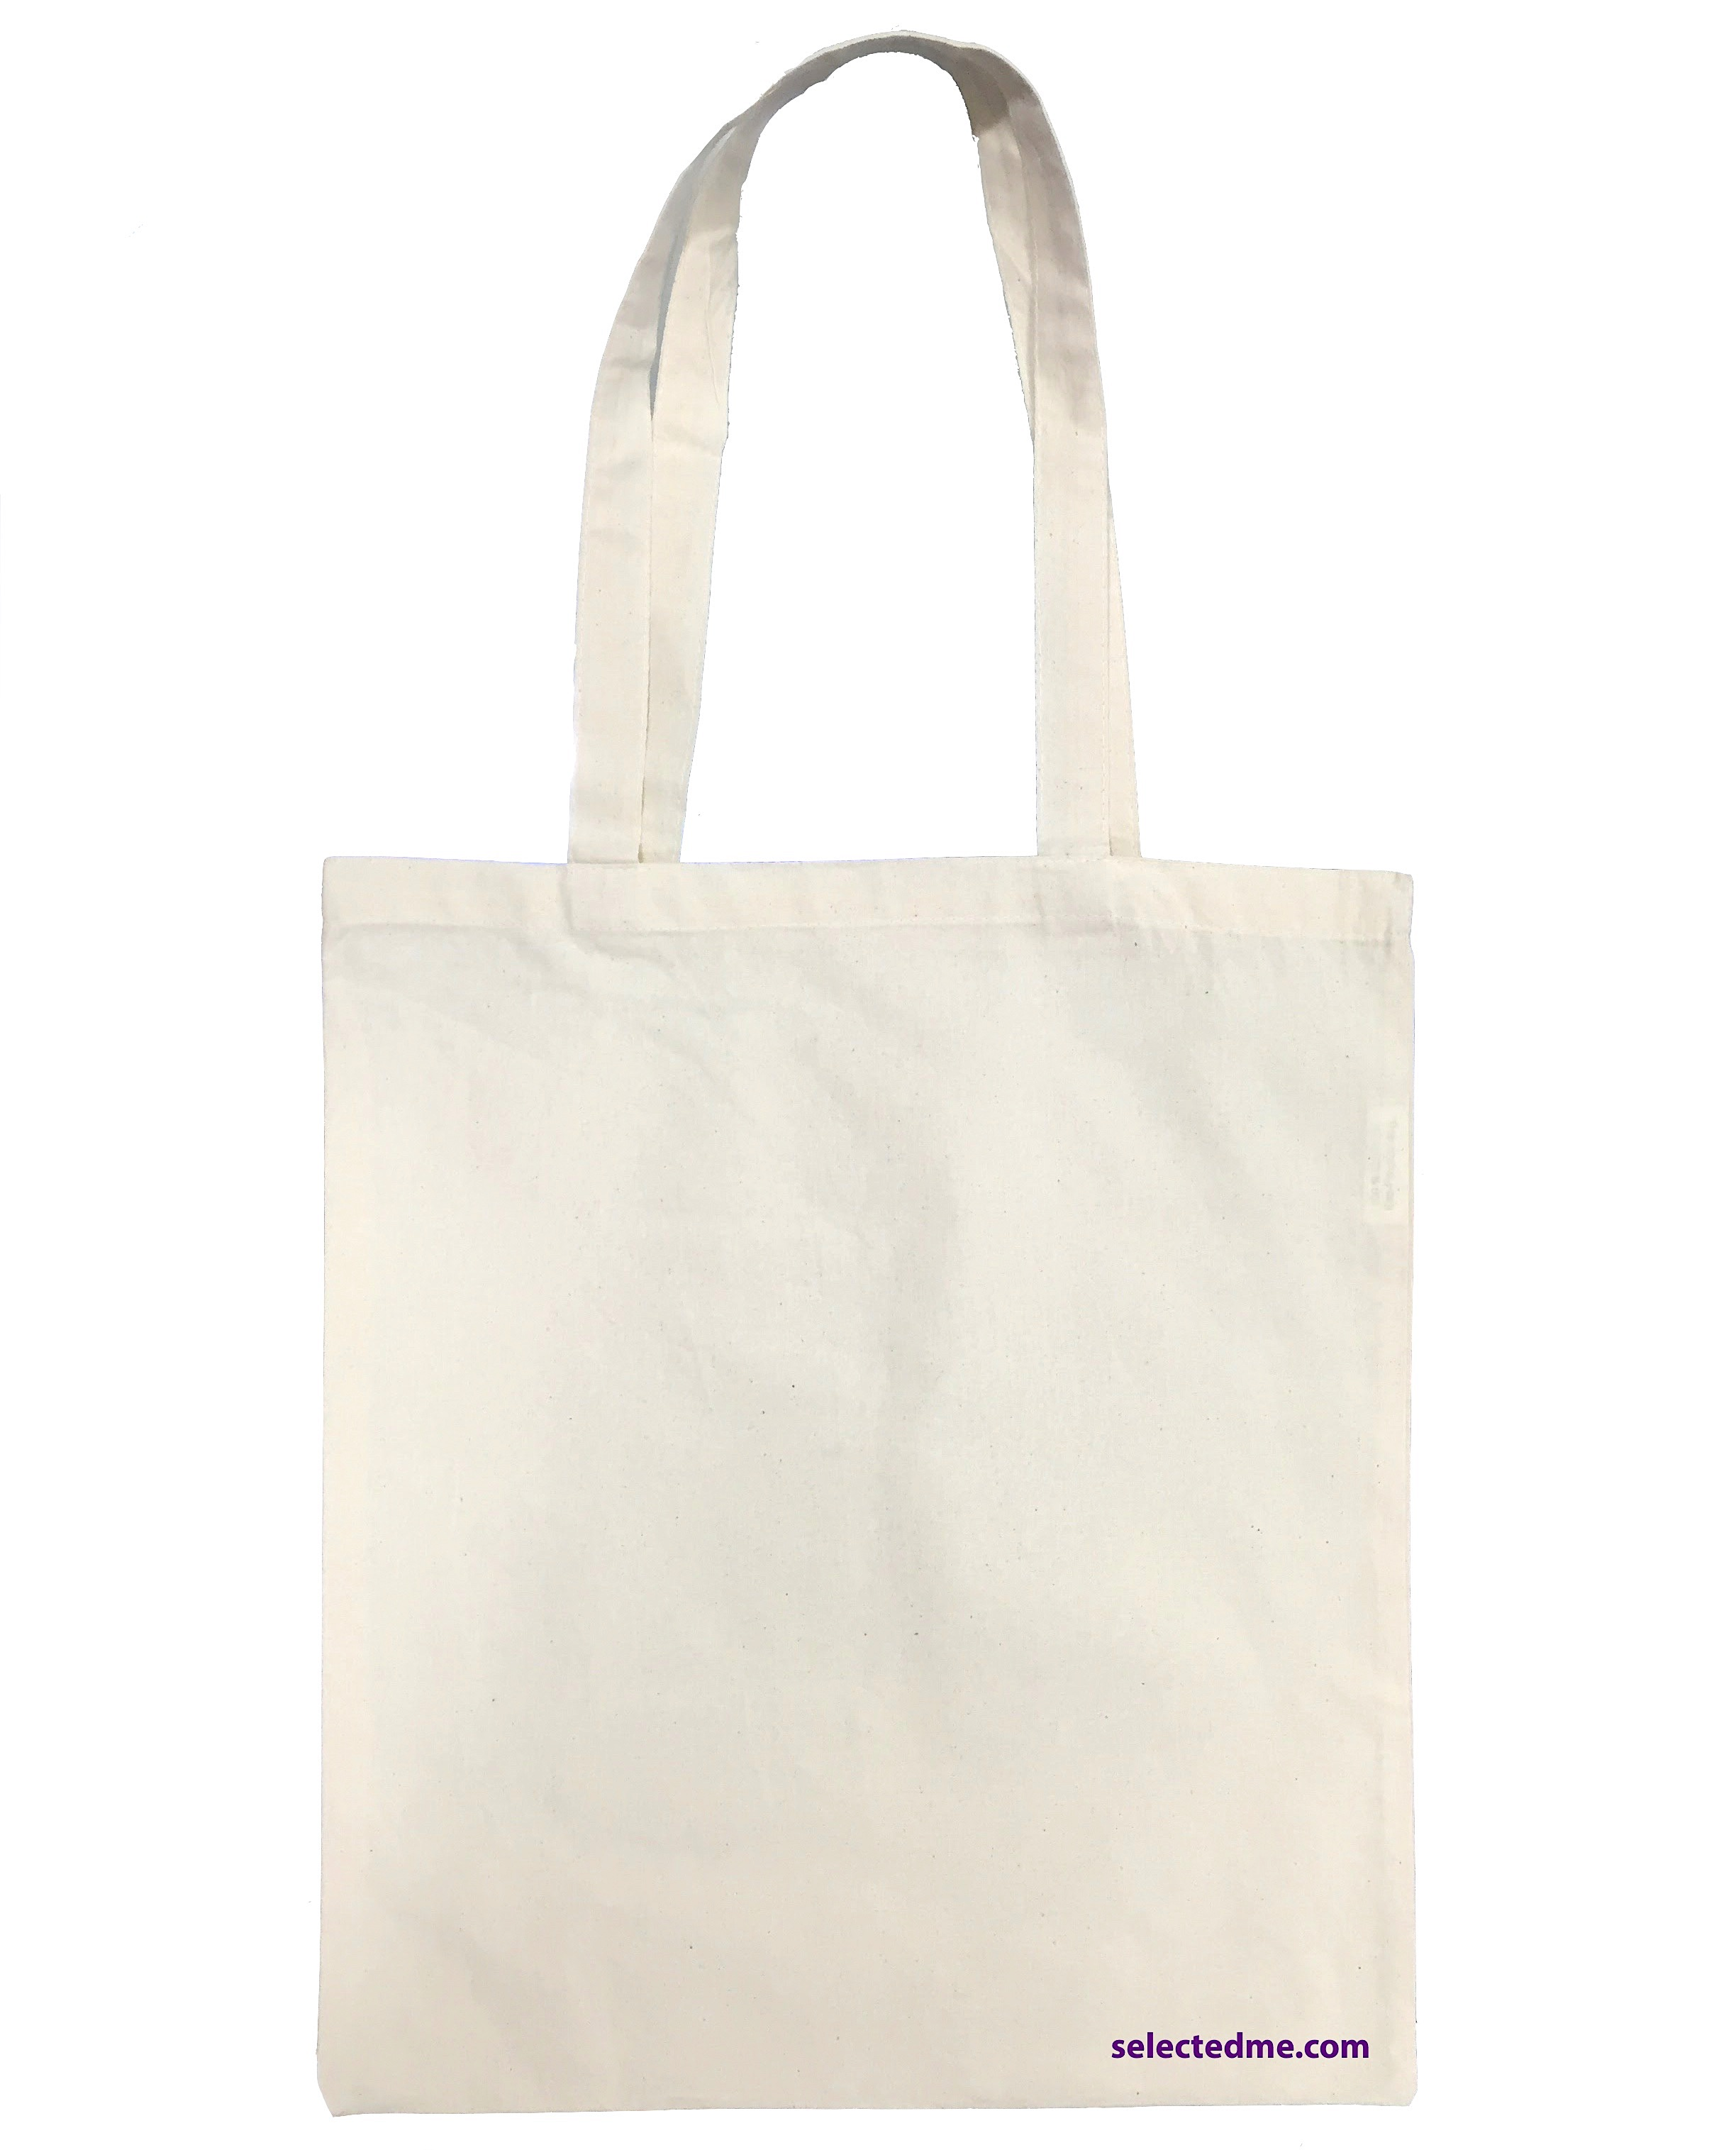 Tote Bags - Cotton Tote Bags, Canvas Bags wholesale